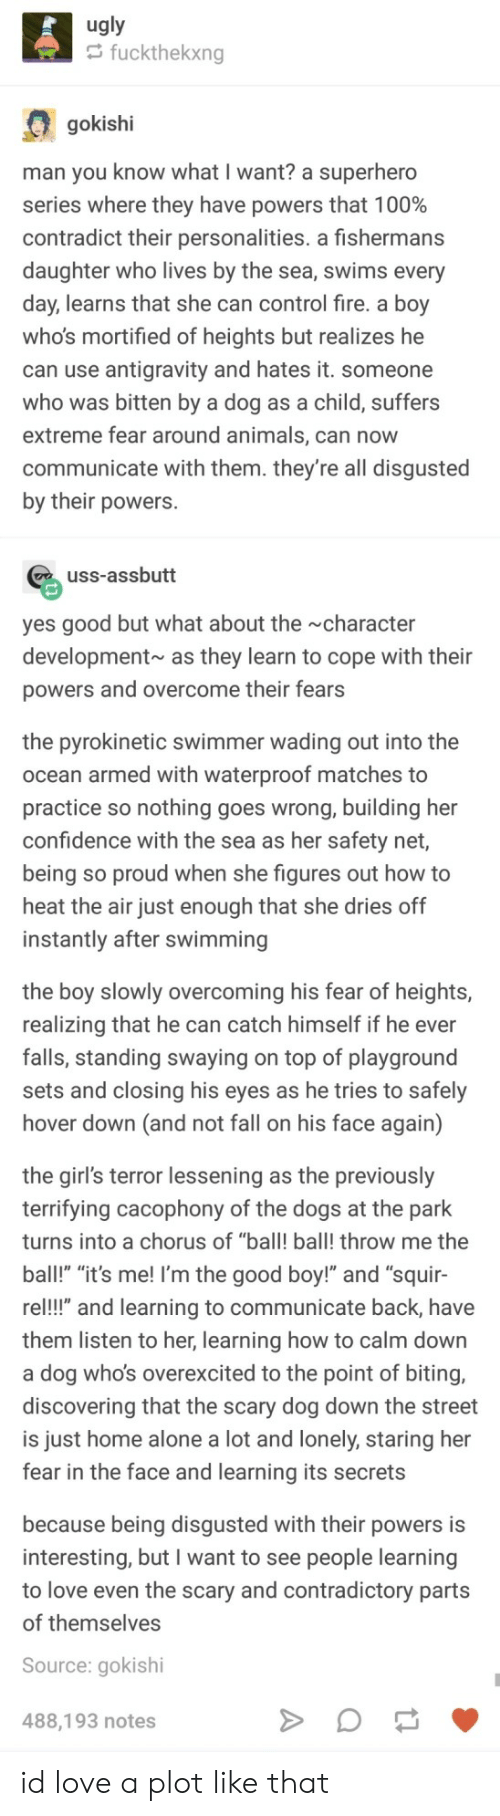 "swimmer: ugly  fuckthekxng  gokishi  man you know what I want? a superhero  series where they have powers that 1 00%  contradict their personalities. a fishermans  daughter who lives by the sea, swims every  day, learns that she can control fire. a boy  who's mortified of heights but realizes he  can use antigravity and hates it. someone  who was bitten by a dog as a child, suffers  extreme fear around animals, can now  communicate with them. they're all disgusted  by their powers.  uss-assbutt  yes good but what about the character  development as they learn to cope with their  powers and overcome their fears  the pyrokinetic swimmer wading out into the  ocean armed with waterproof matches to  practice so nothing goes wrong, building her  confidence with the sea as her safety net,  being so proud when she figures out how to  heat the air just enough that she dries off  instantly after swimming  the boy slowly overcoming his fear of heights,  realizing that he can catch himself if he ever  falls, standing swaying on top of playground  sets and closing his eyes as he tries to safely  hover down (and not fall on his face again)  the girl's terror lessening as the previously  terrifying cacophony of the dogs at the park  turns into a chorus of ""ball! ball! throw me the  ball!"" ""it's me! I'm the good boy!"" and ""squir-  re!!"" and learning to communicate back, have  them listen to her, learning how to calm down  a dog who's overexcited to the point of biting,  discovering that the scary dog down the street  is just home alone a lot and lonely, staring her  fear in the face and learning its secrets  because being disgusted with their powers is  interesting, but I want to see people learning  to love even the scary and contradictory parts  of themselves  Source: gokishi  488,193 notes id love a plot like that"